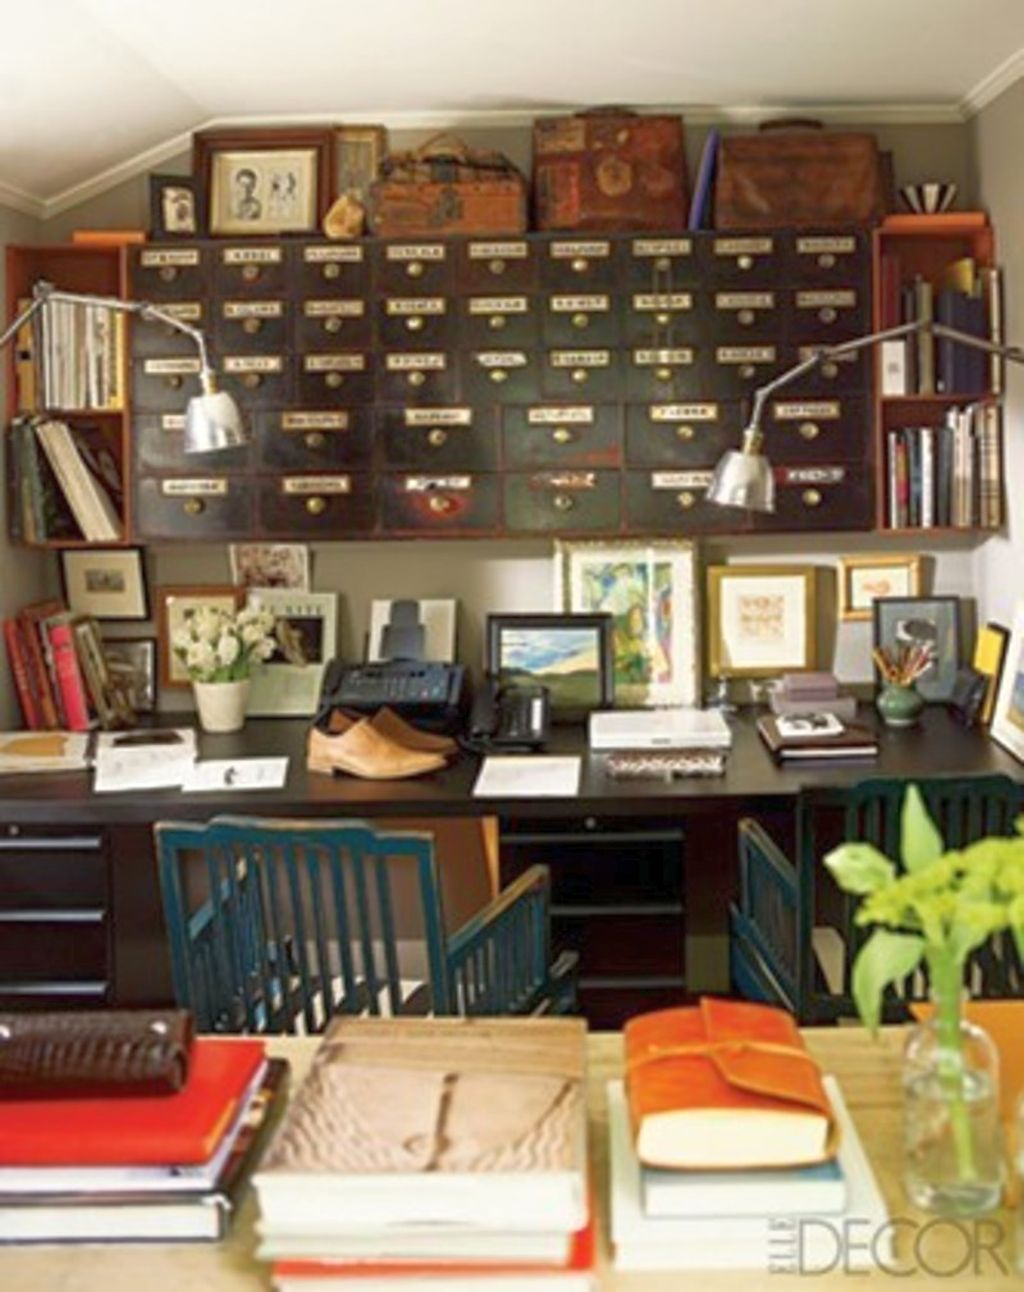 Home Office Design Ideas Basement: 20 Inspiring Home Office Design Ideas For Small Spaces